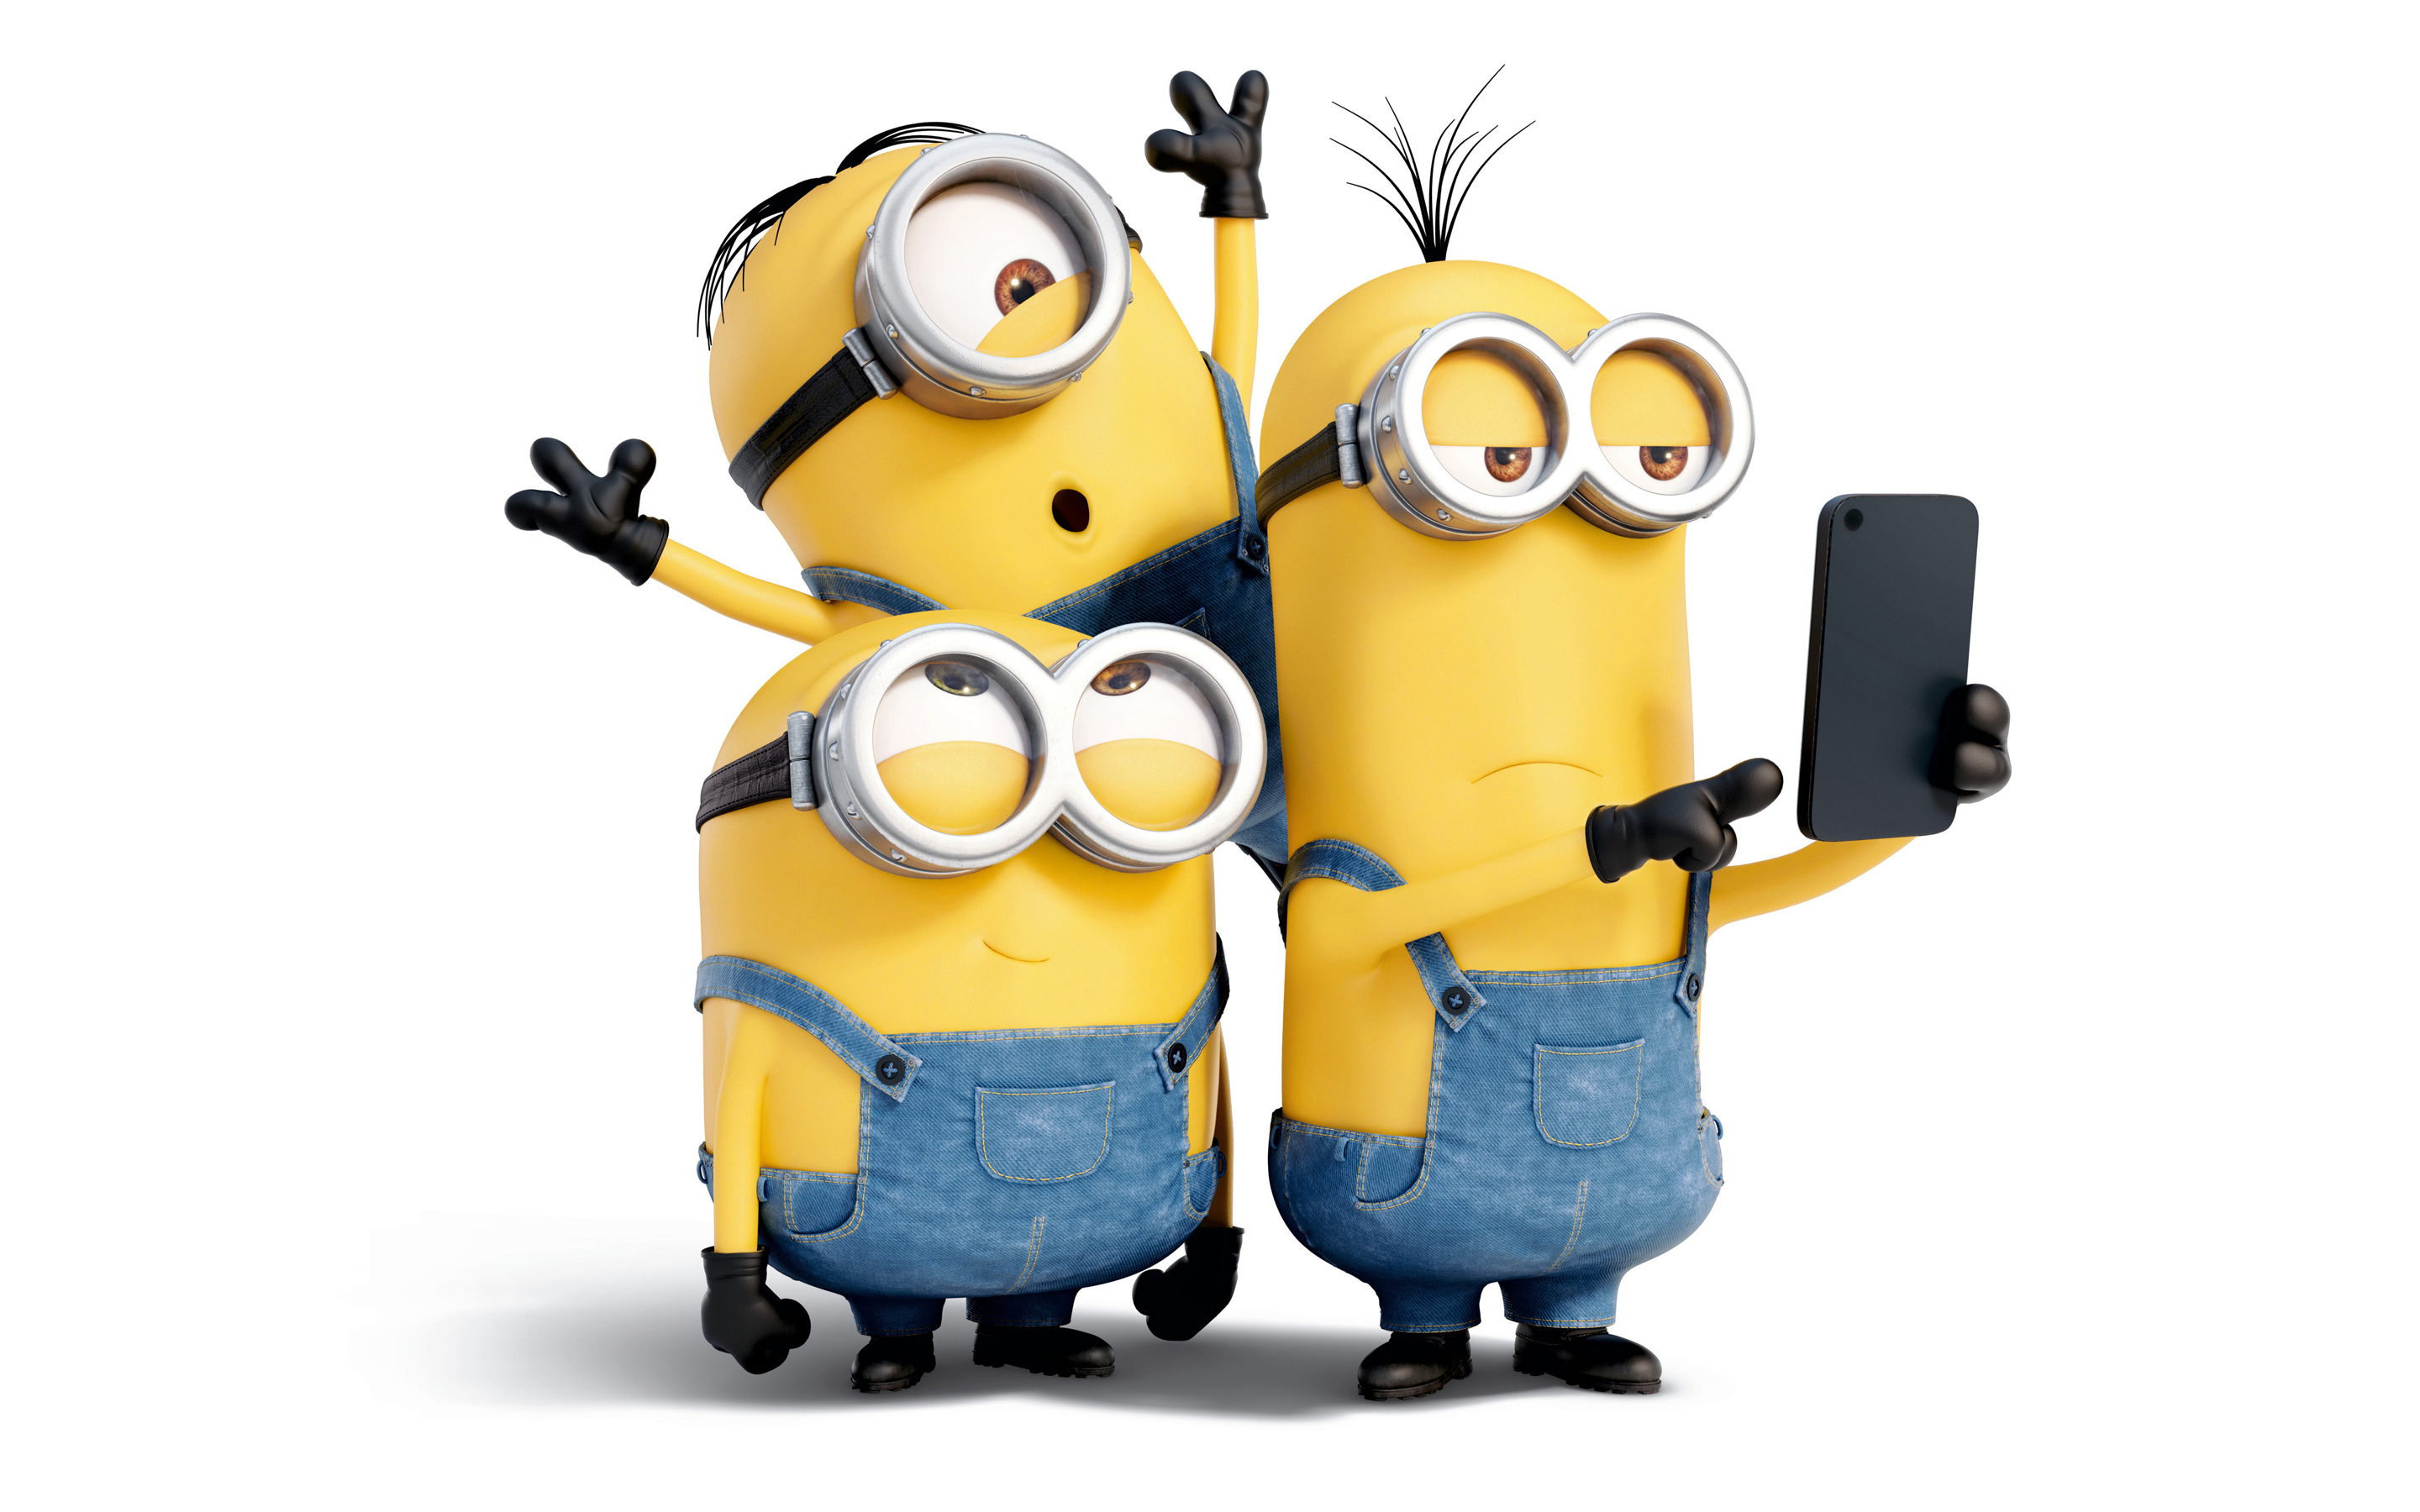 HD Wallpapers 2015 Minions